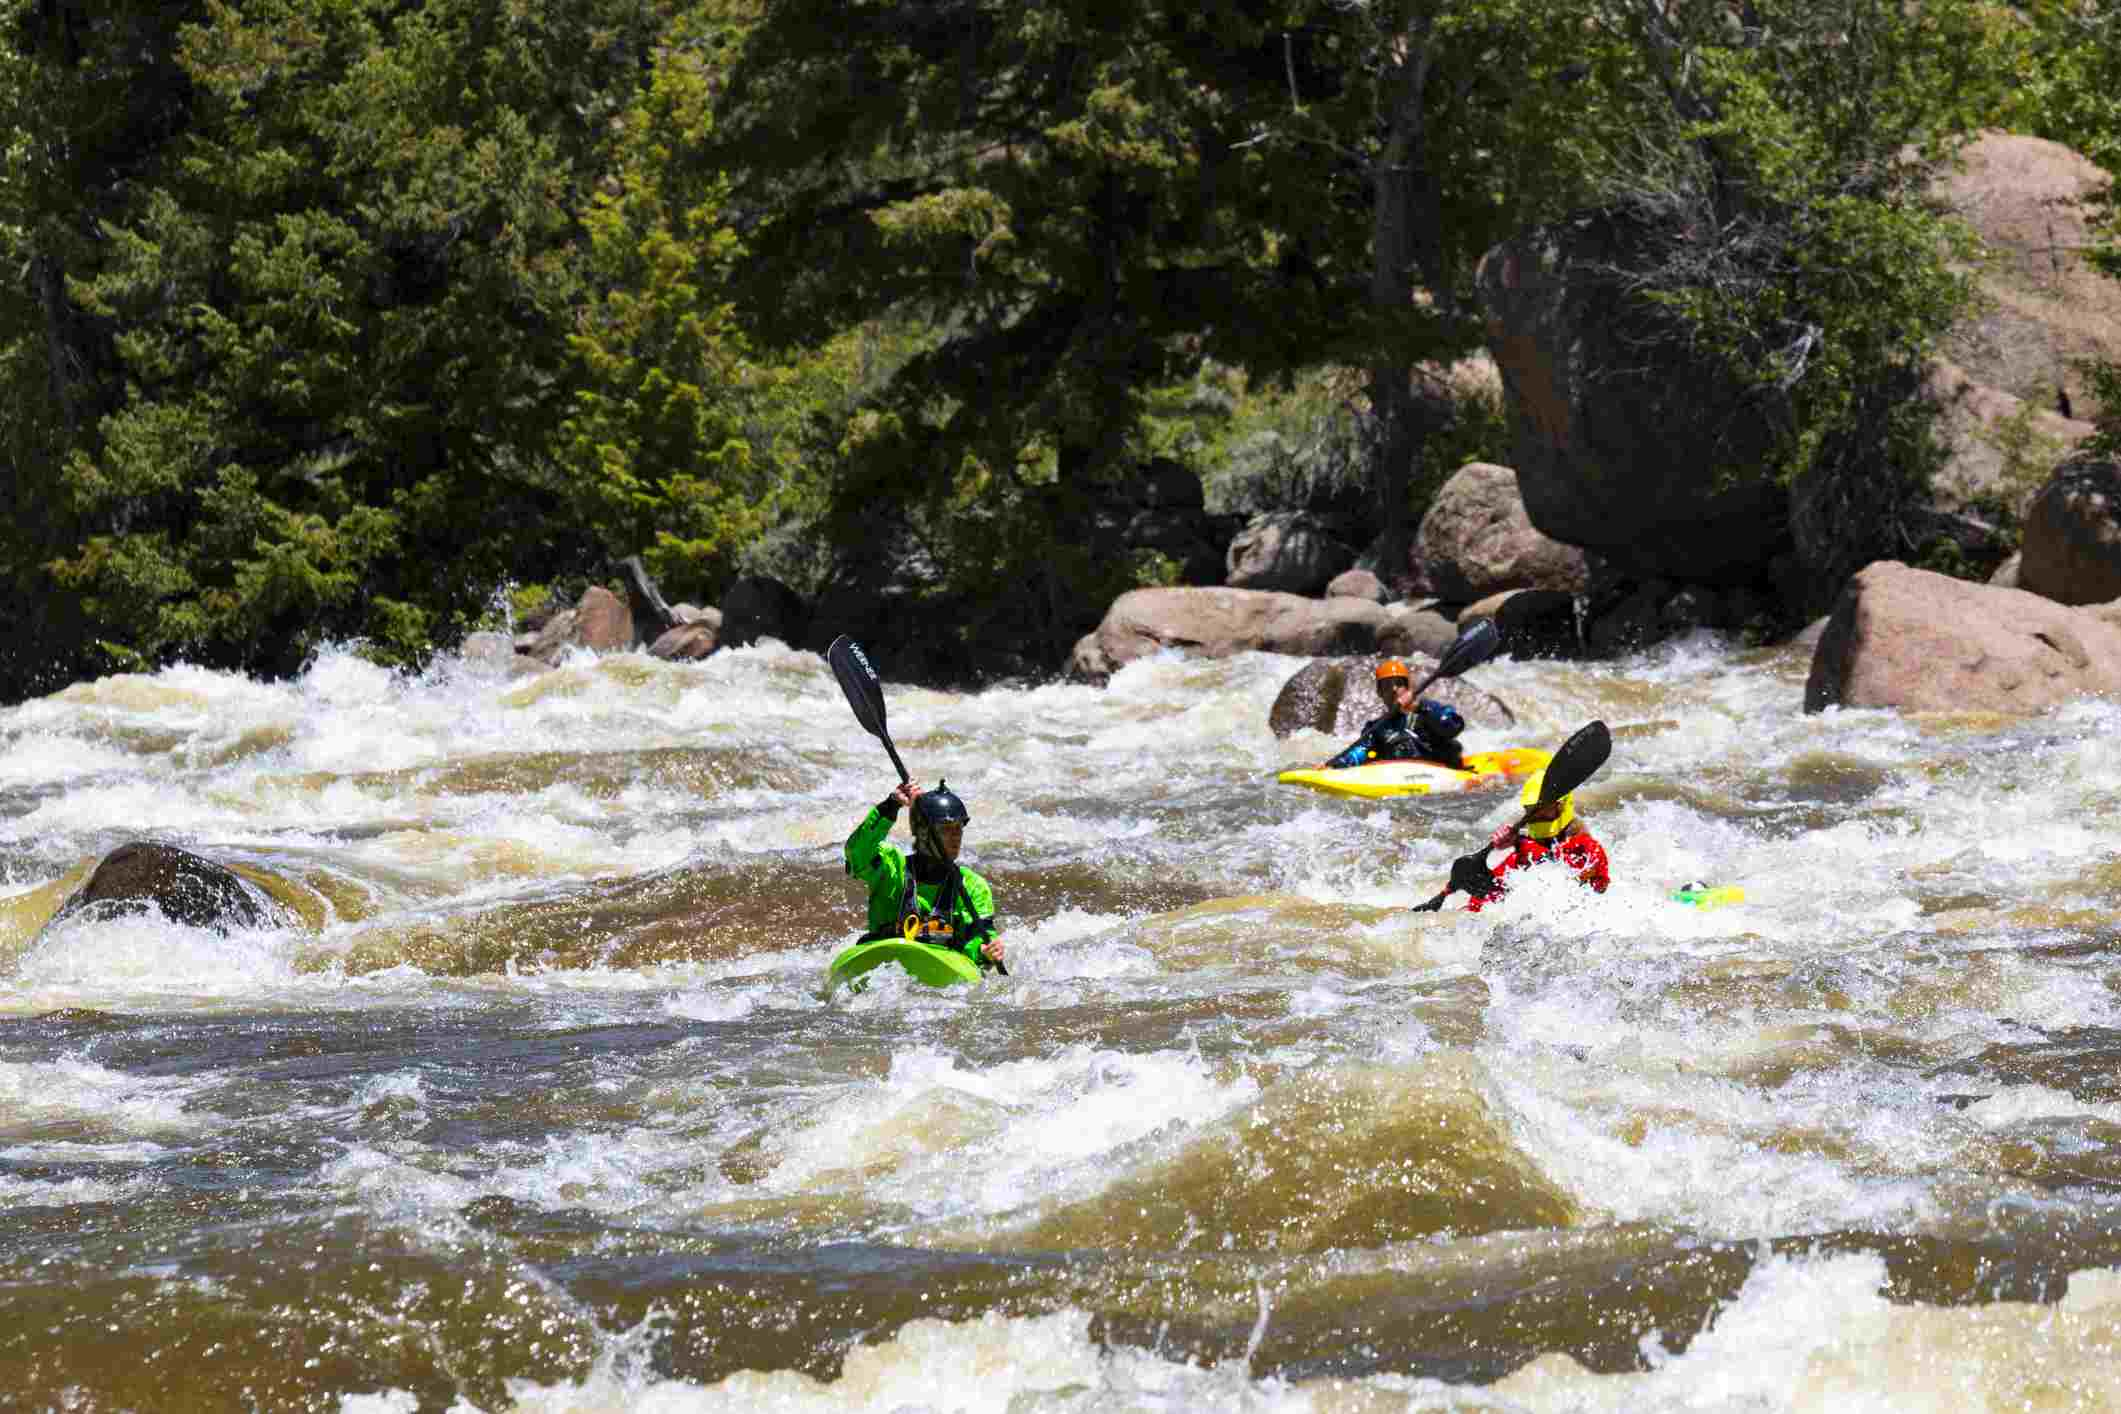 The Top 6 Places to Go White Water Rafting in Colorado